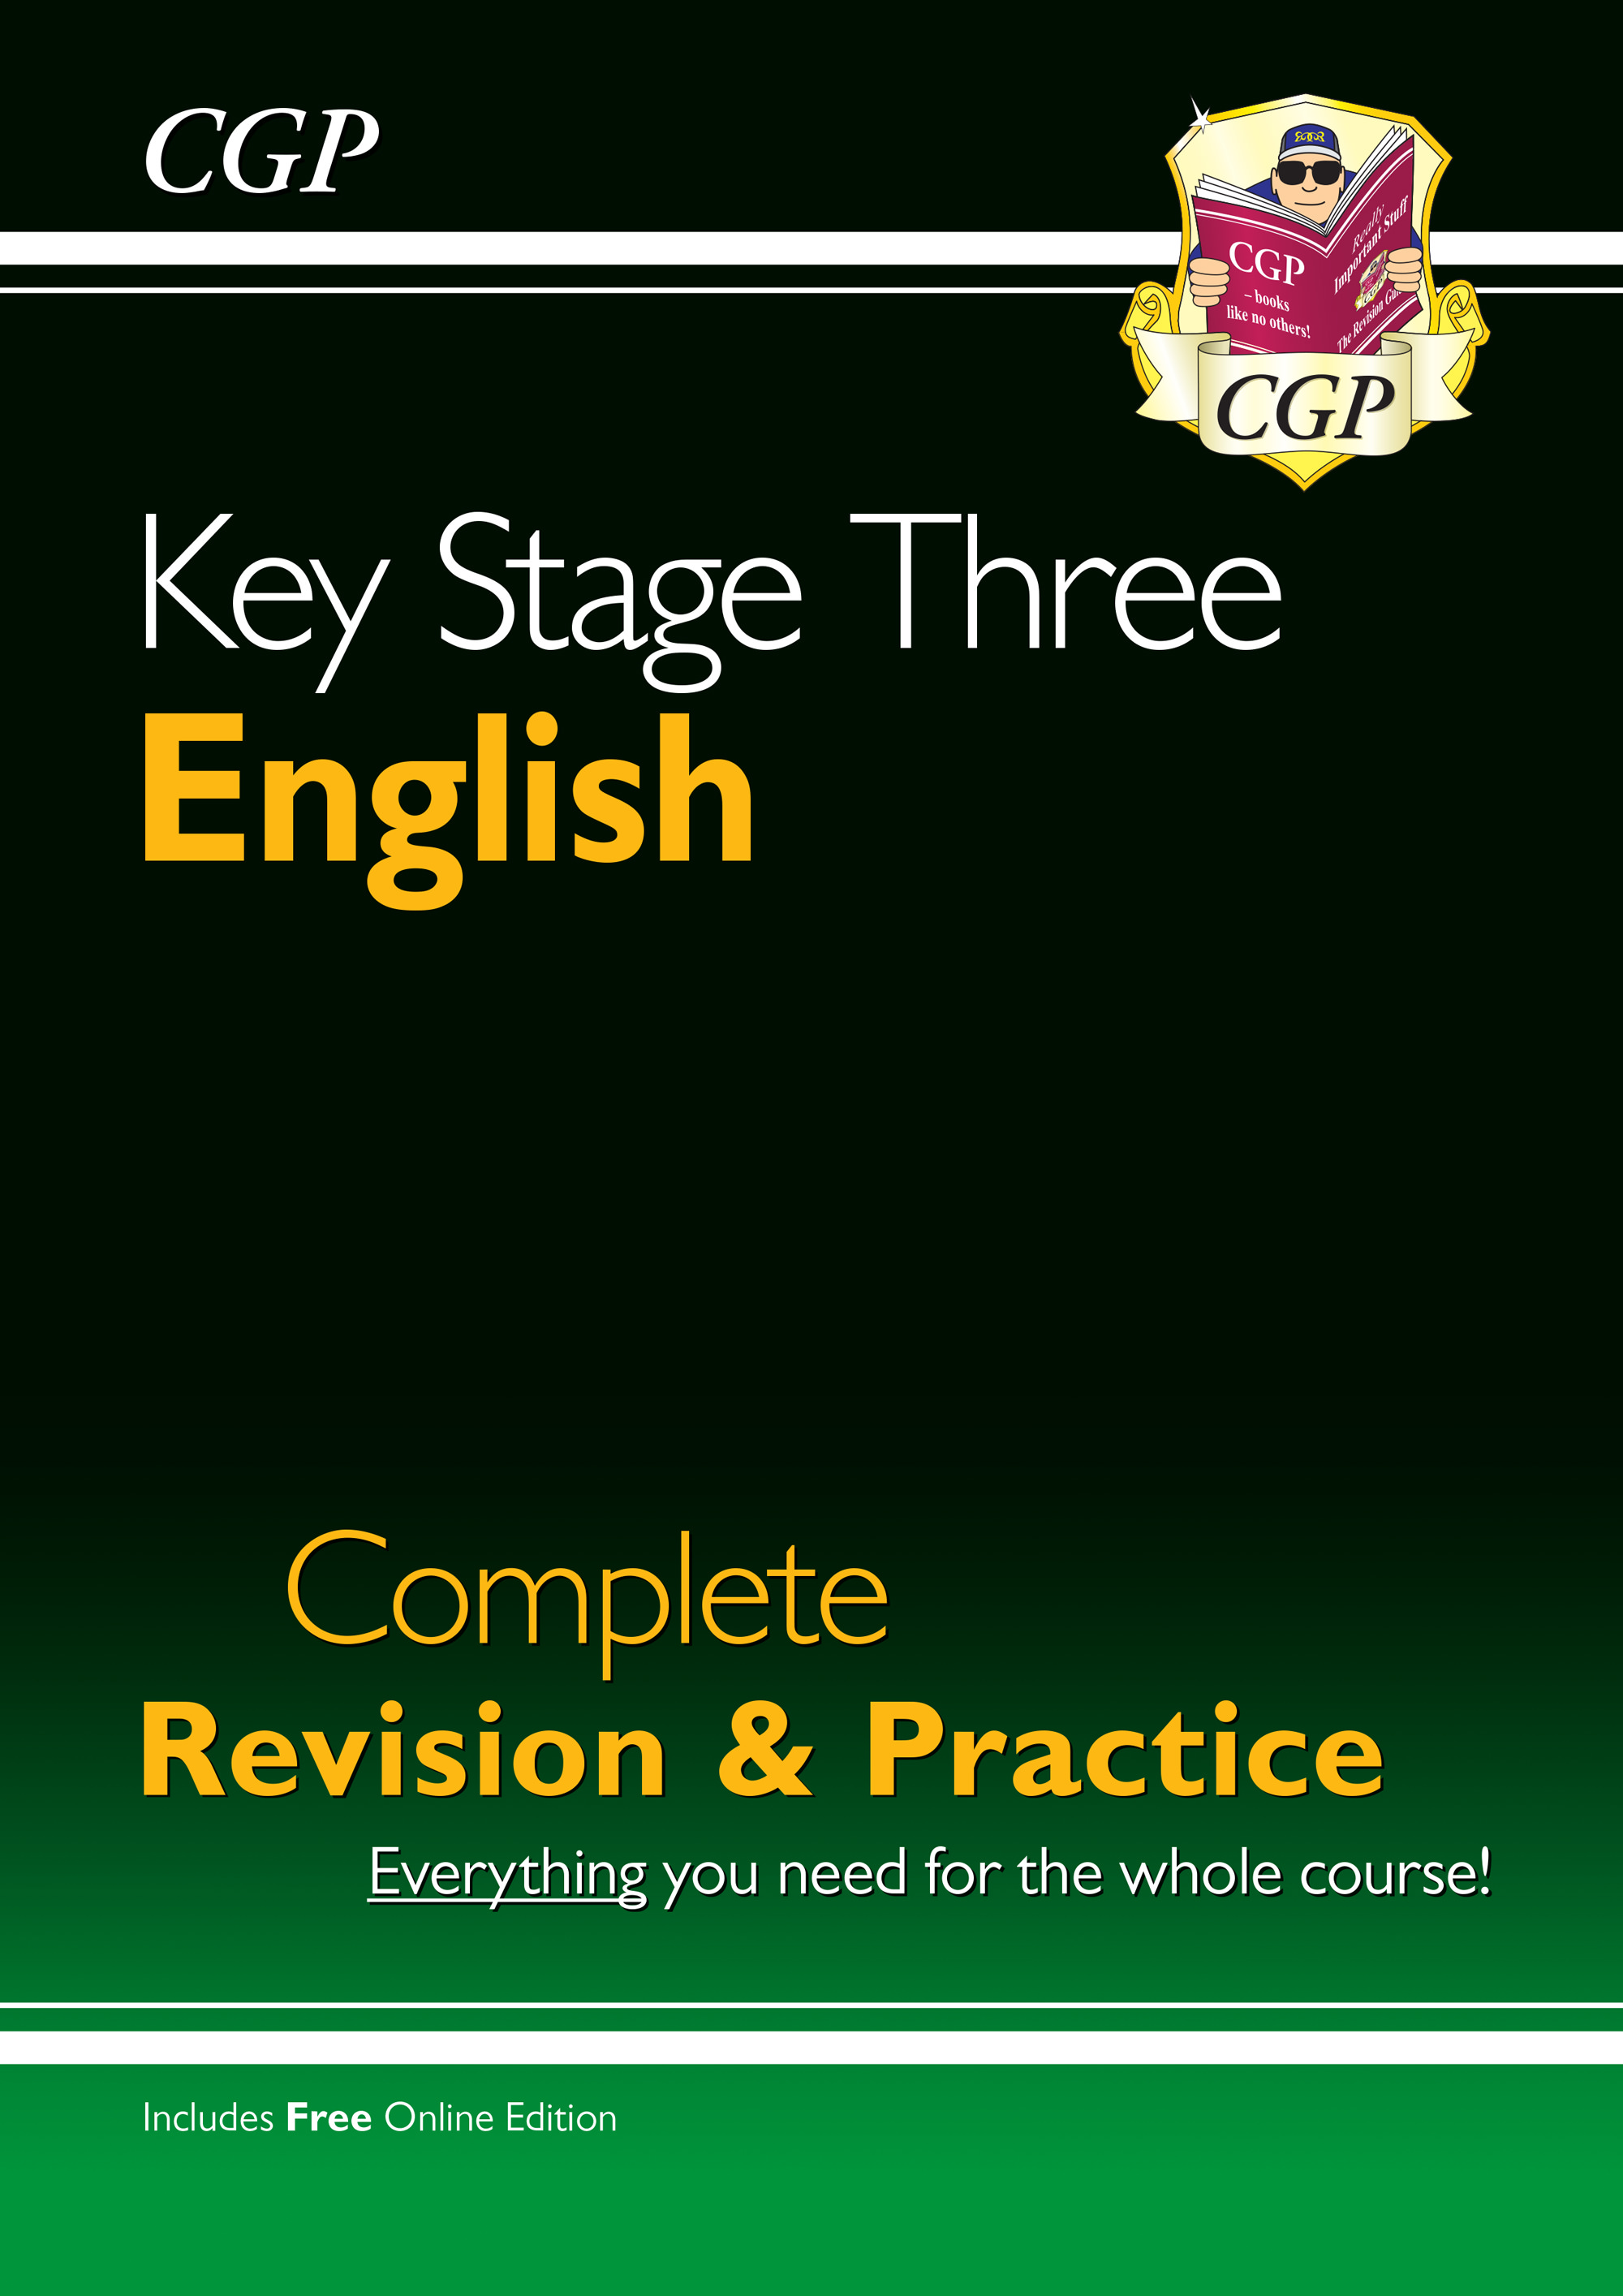 Key Stage 3 Success Guides , KS3 Success Guide Levels 4-7 Maths